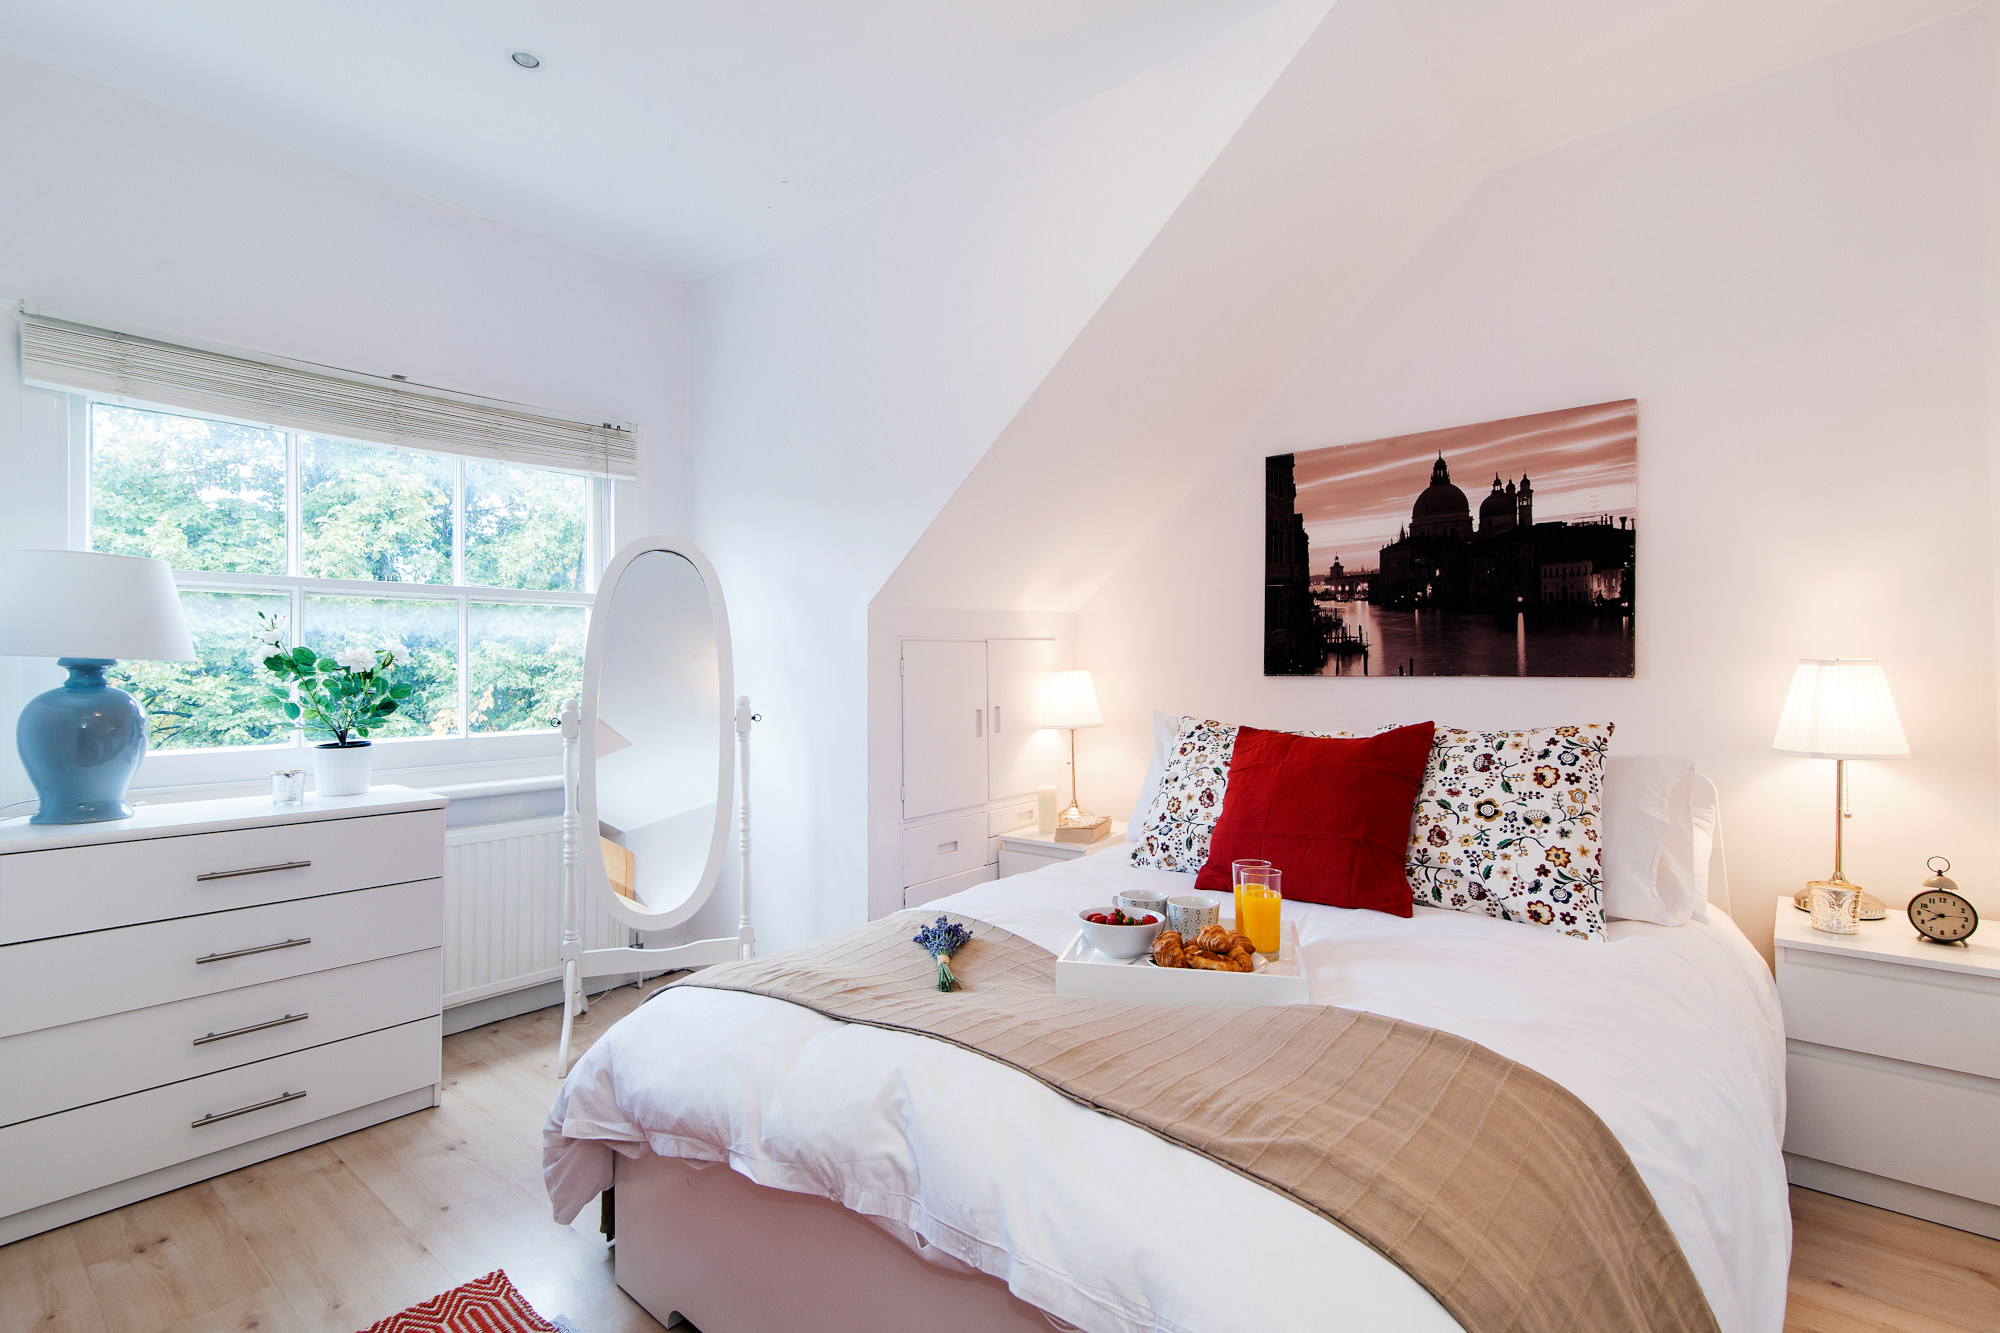 The Kensington Morning Mansion apartment - London - bedroom 1 - two bedroom kensington apartment london